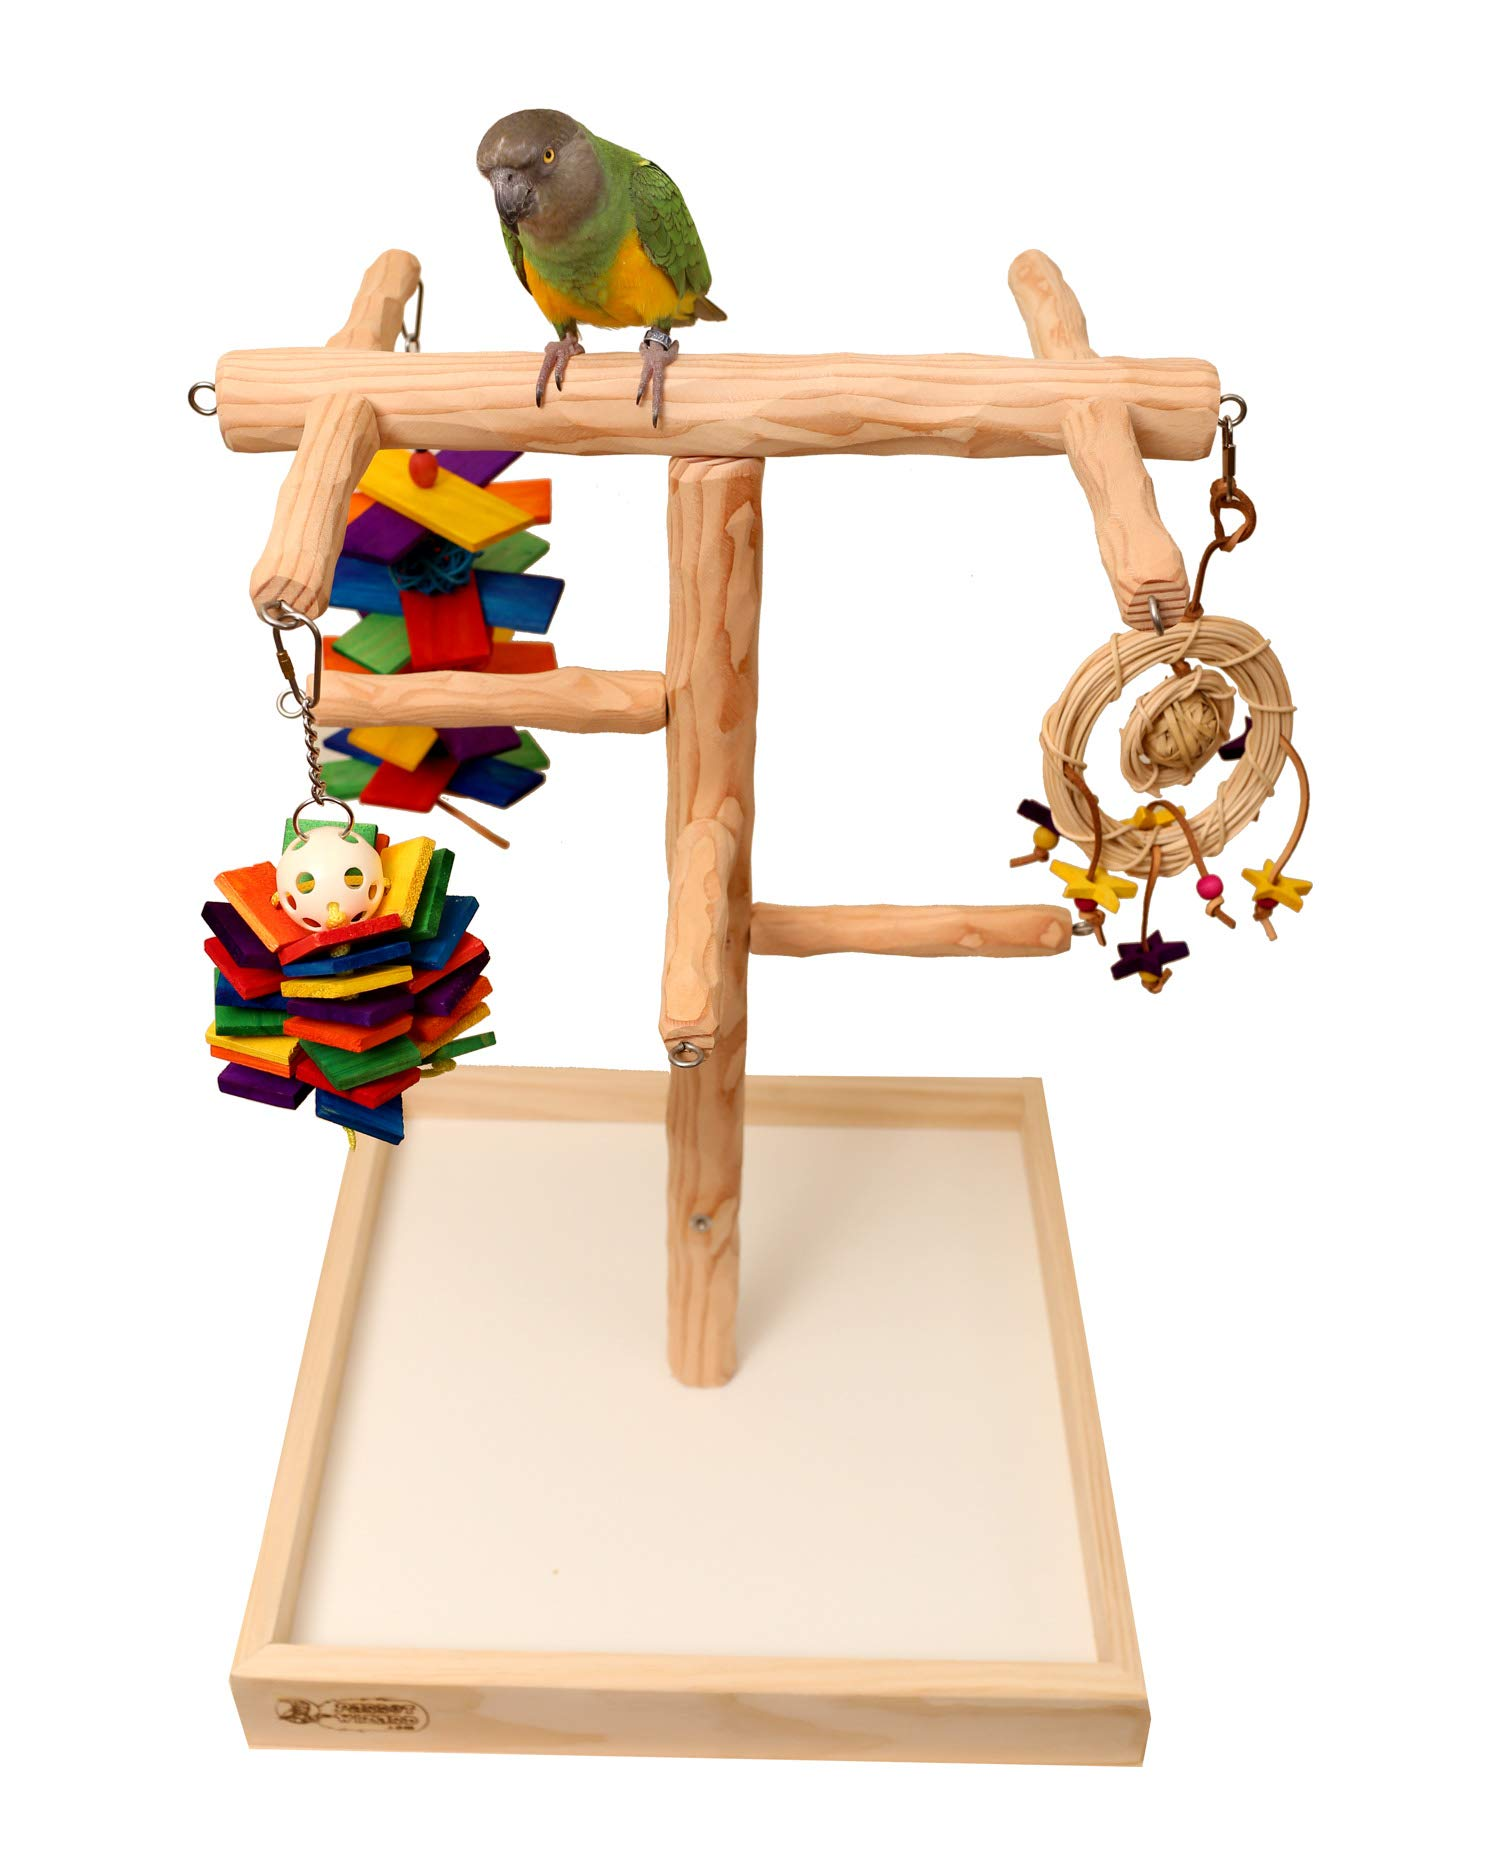 Deluxe NU Perch Tabletop Parrot Climbing Tree by Parrot Wizard